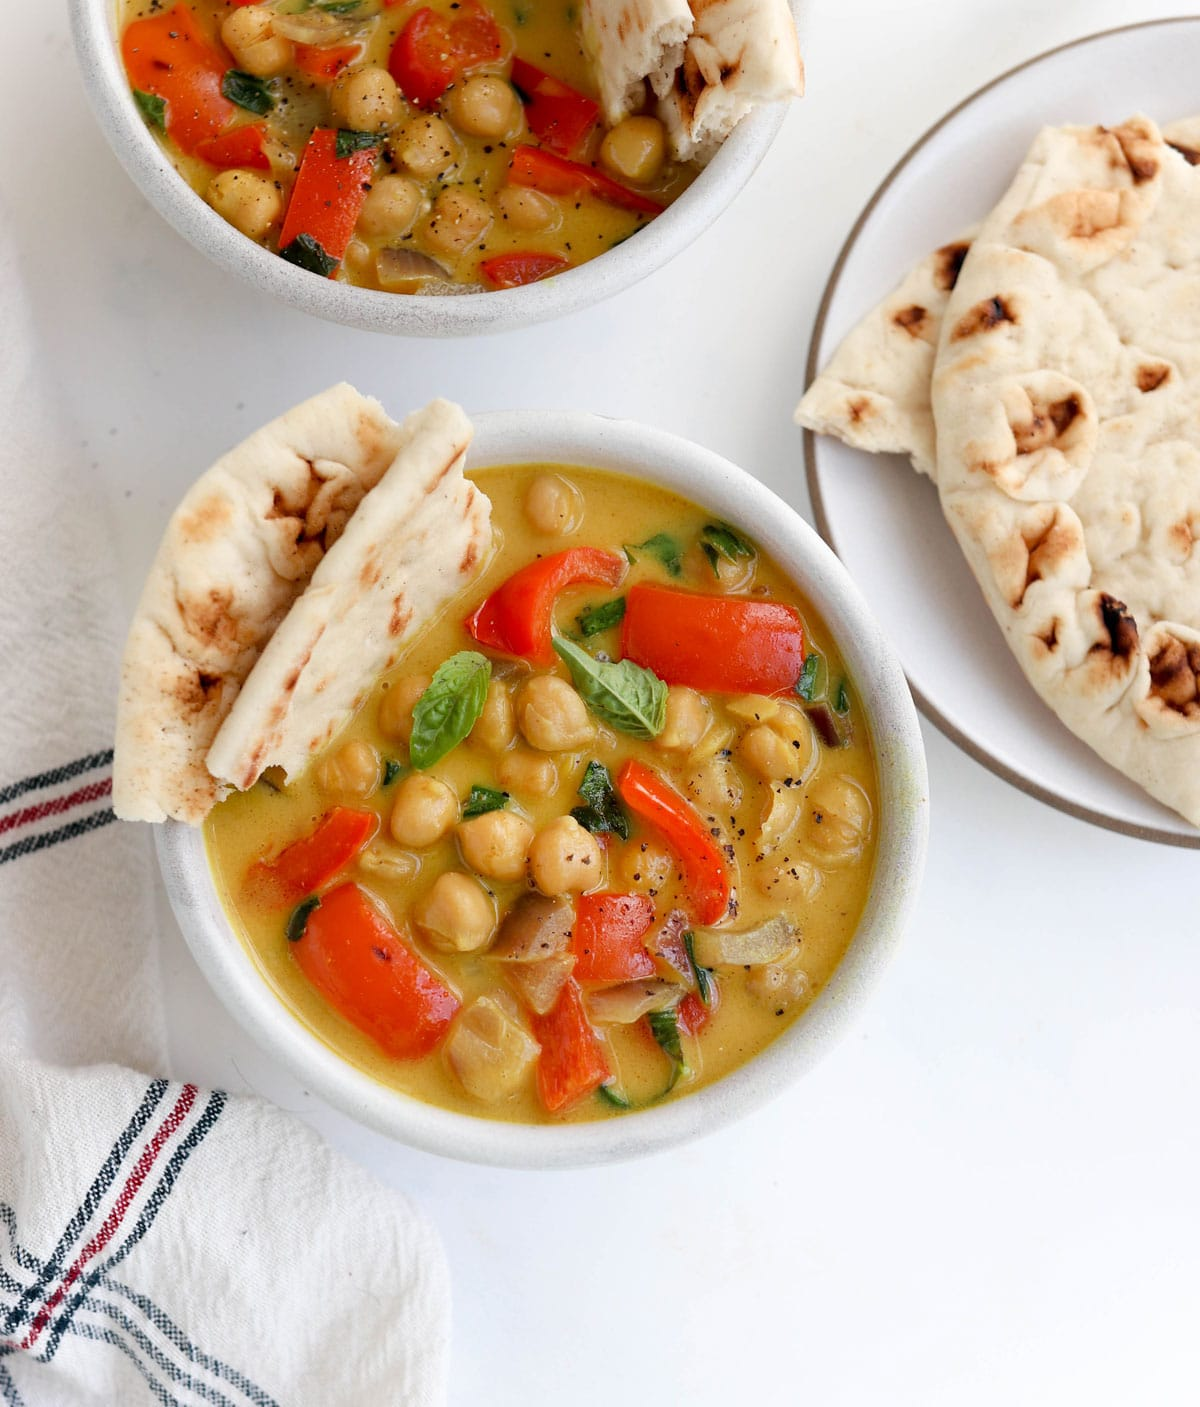 chickpea curry in bowl with naan bread